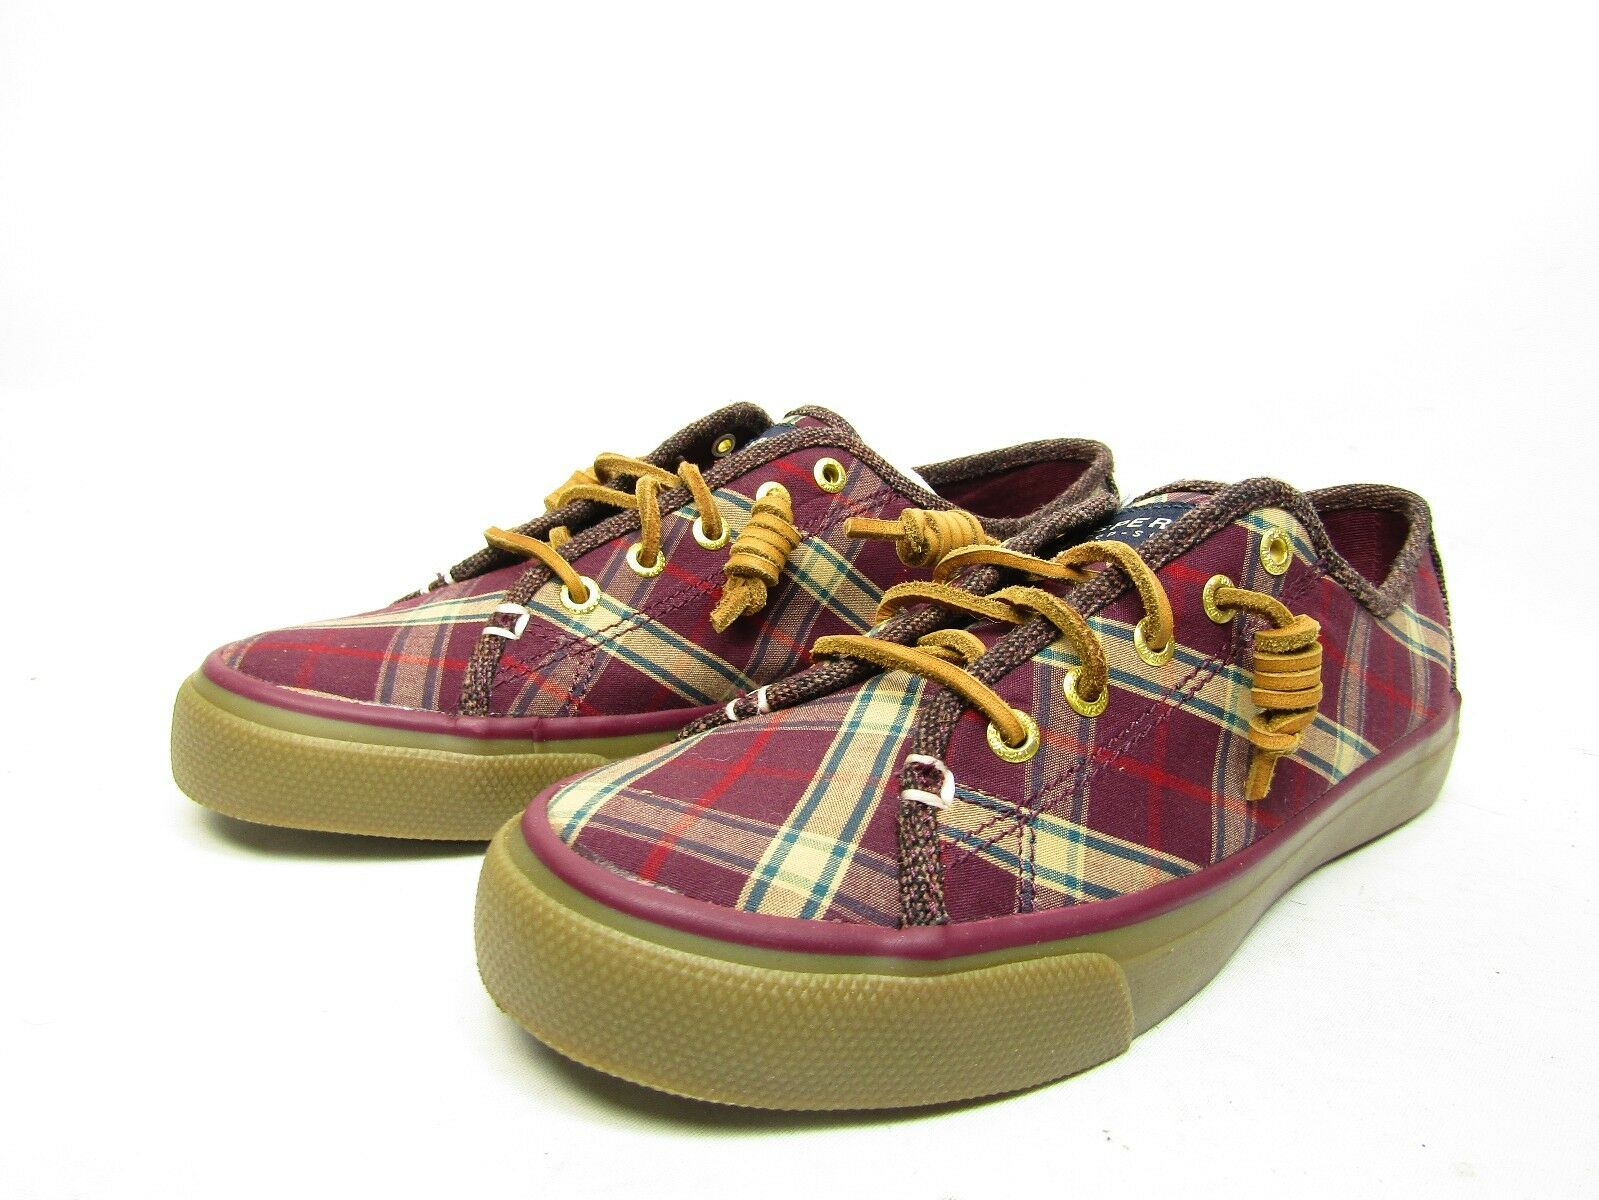 Sperry Womens Oxford Magenta Shoes STS90969 Seacoast B/F Magenta Oxford Fabric Size 8 M c447e9